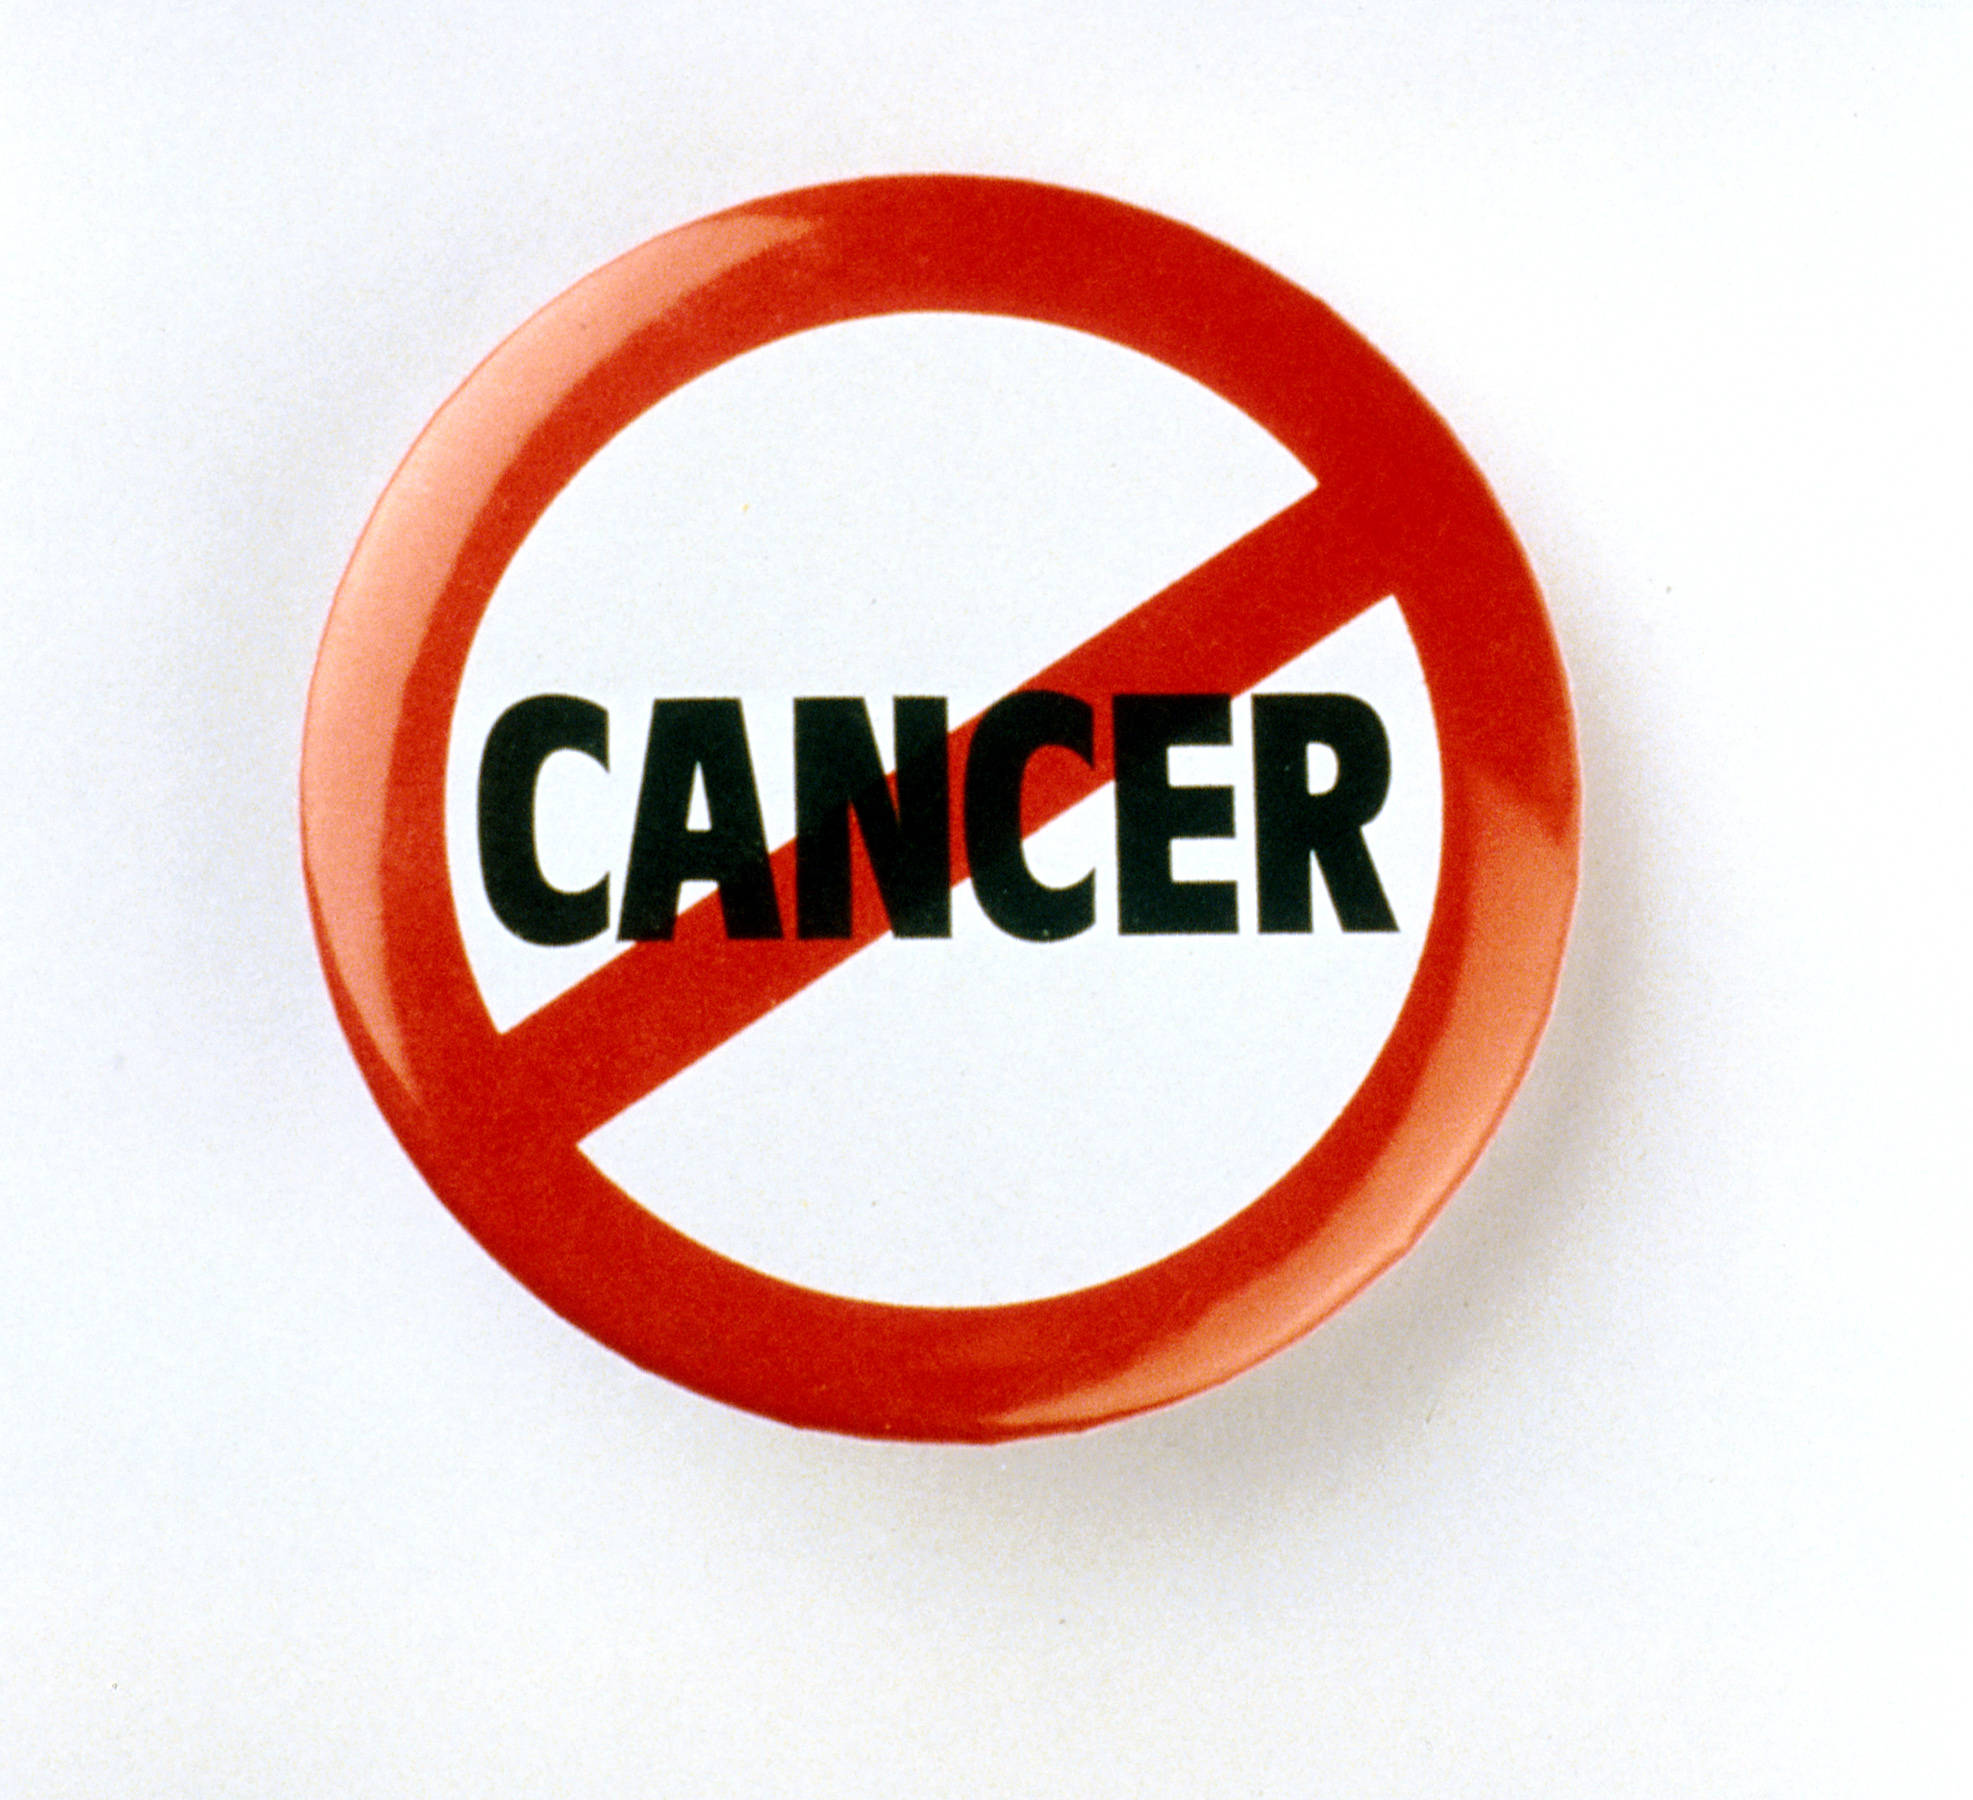 Cancer_button